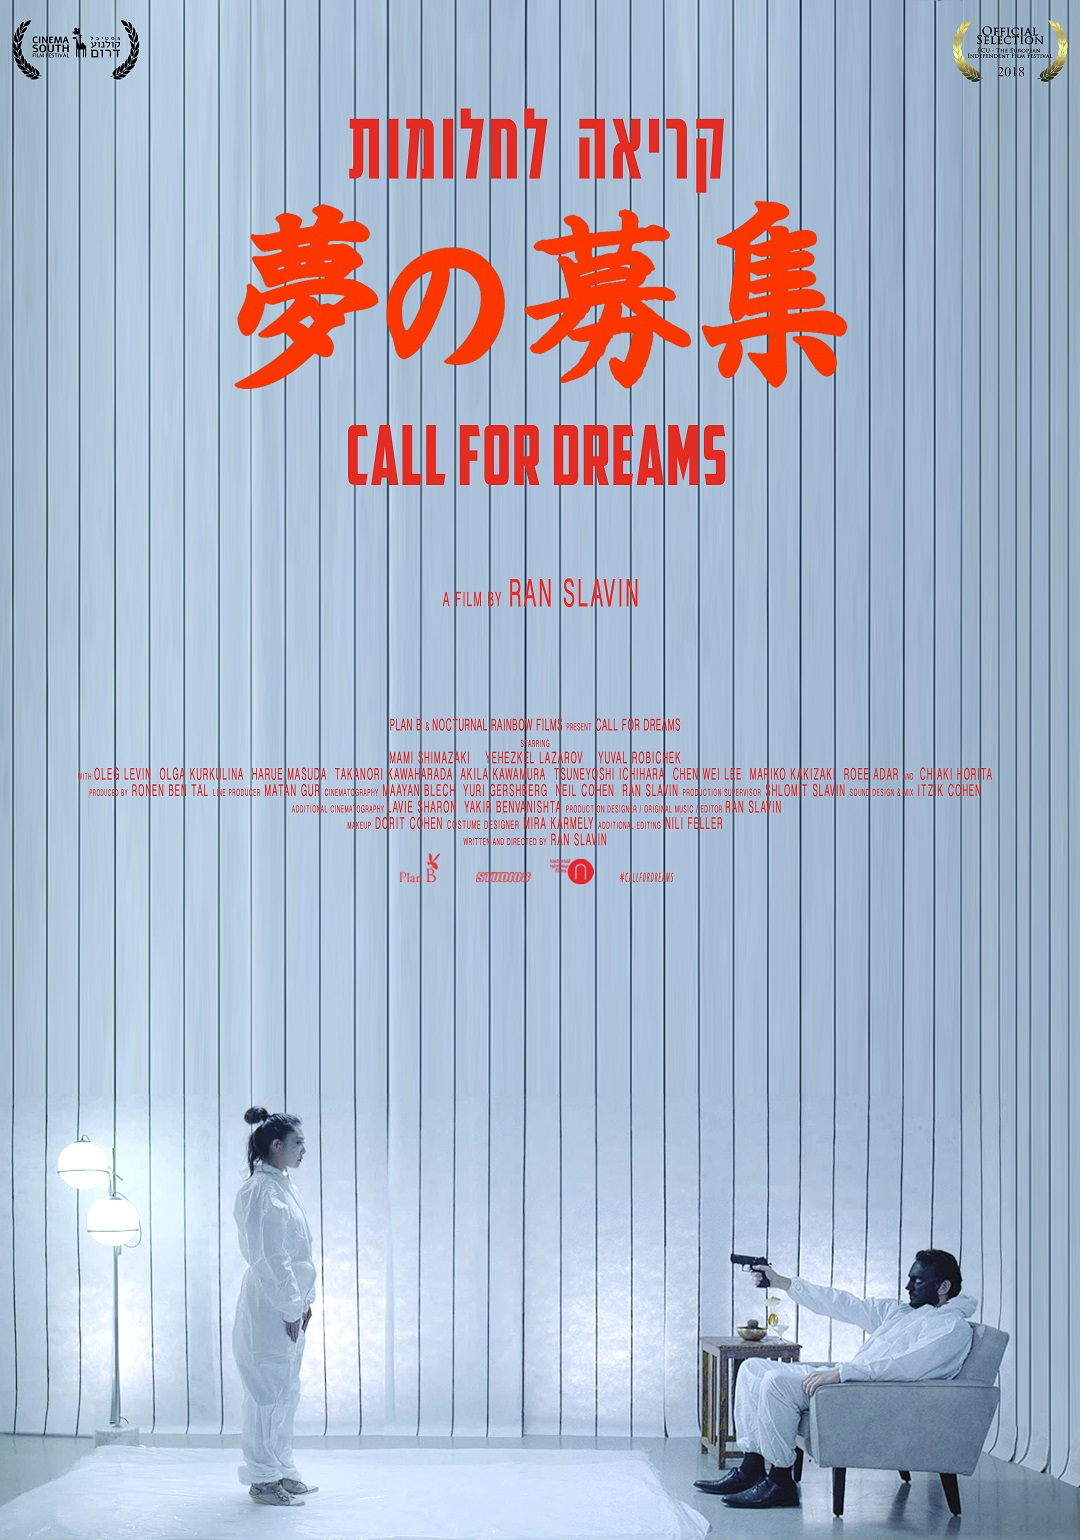 Call For Dreams poster 7 vertical ran slavin222